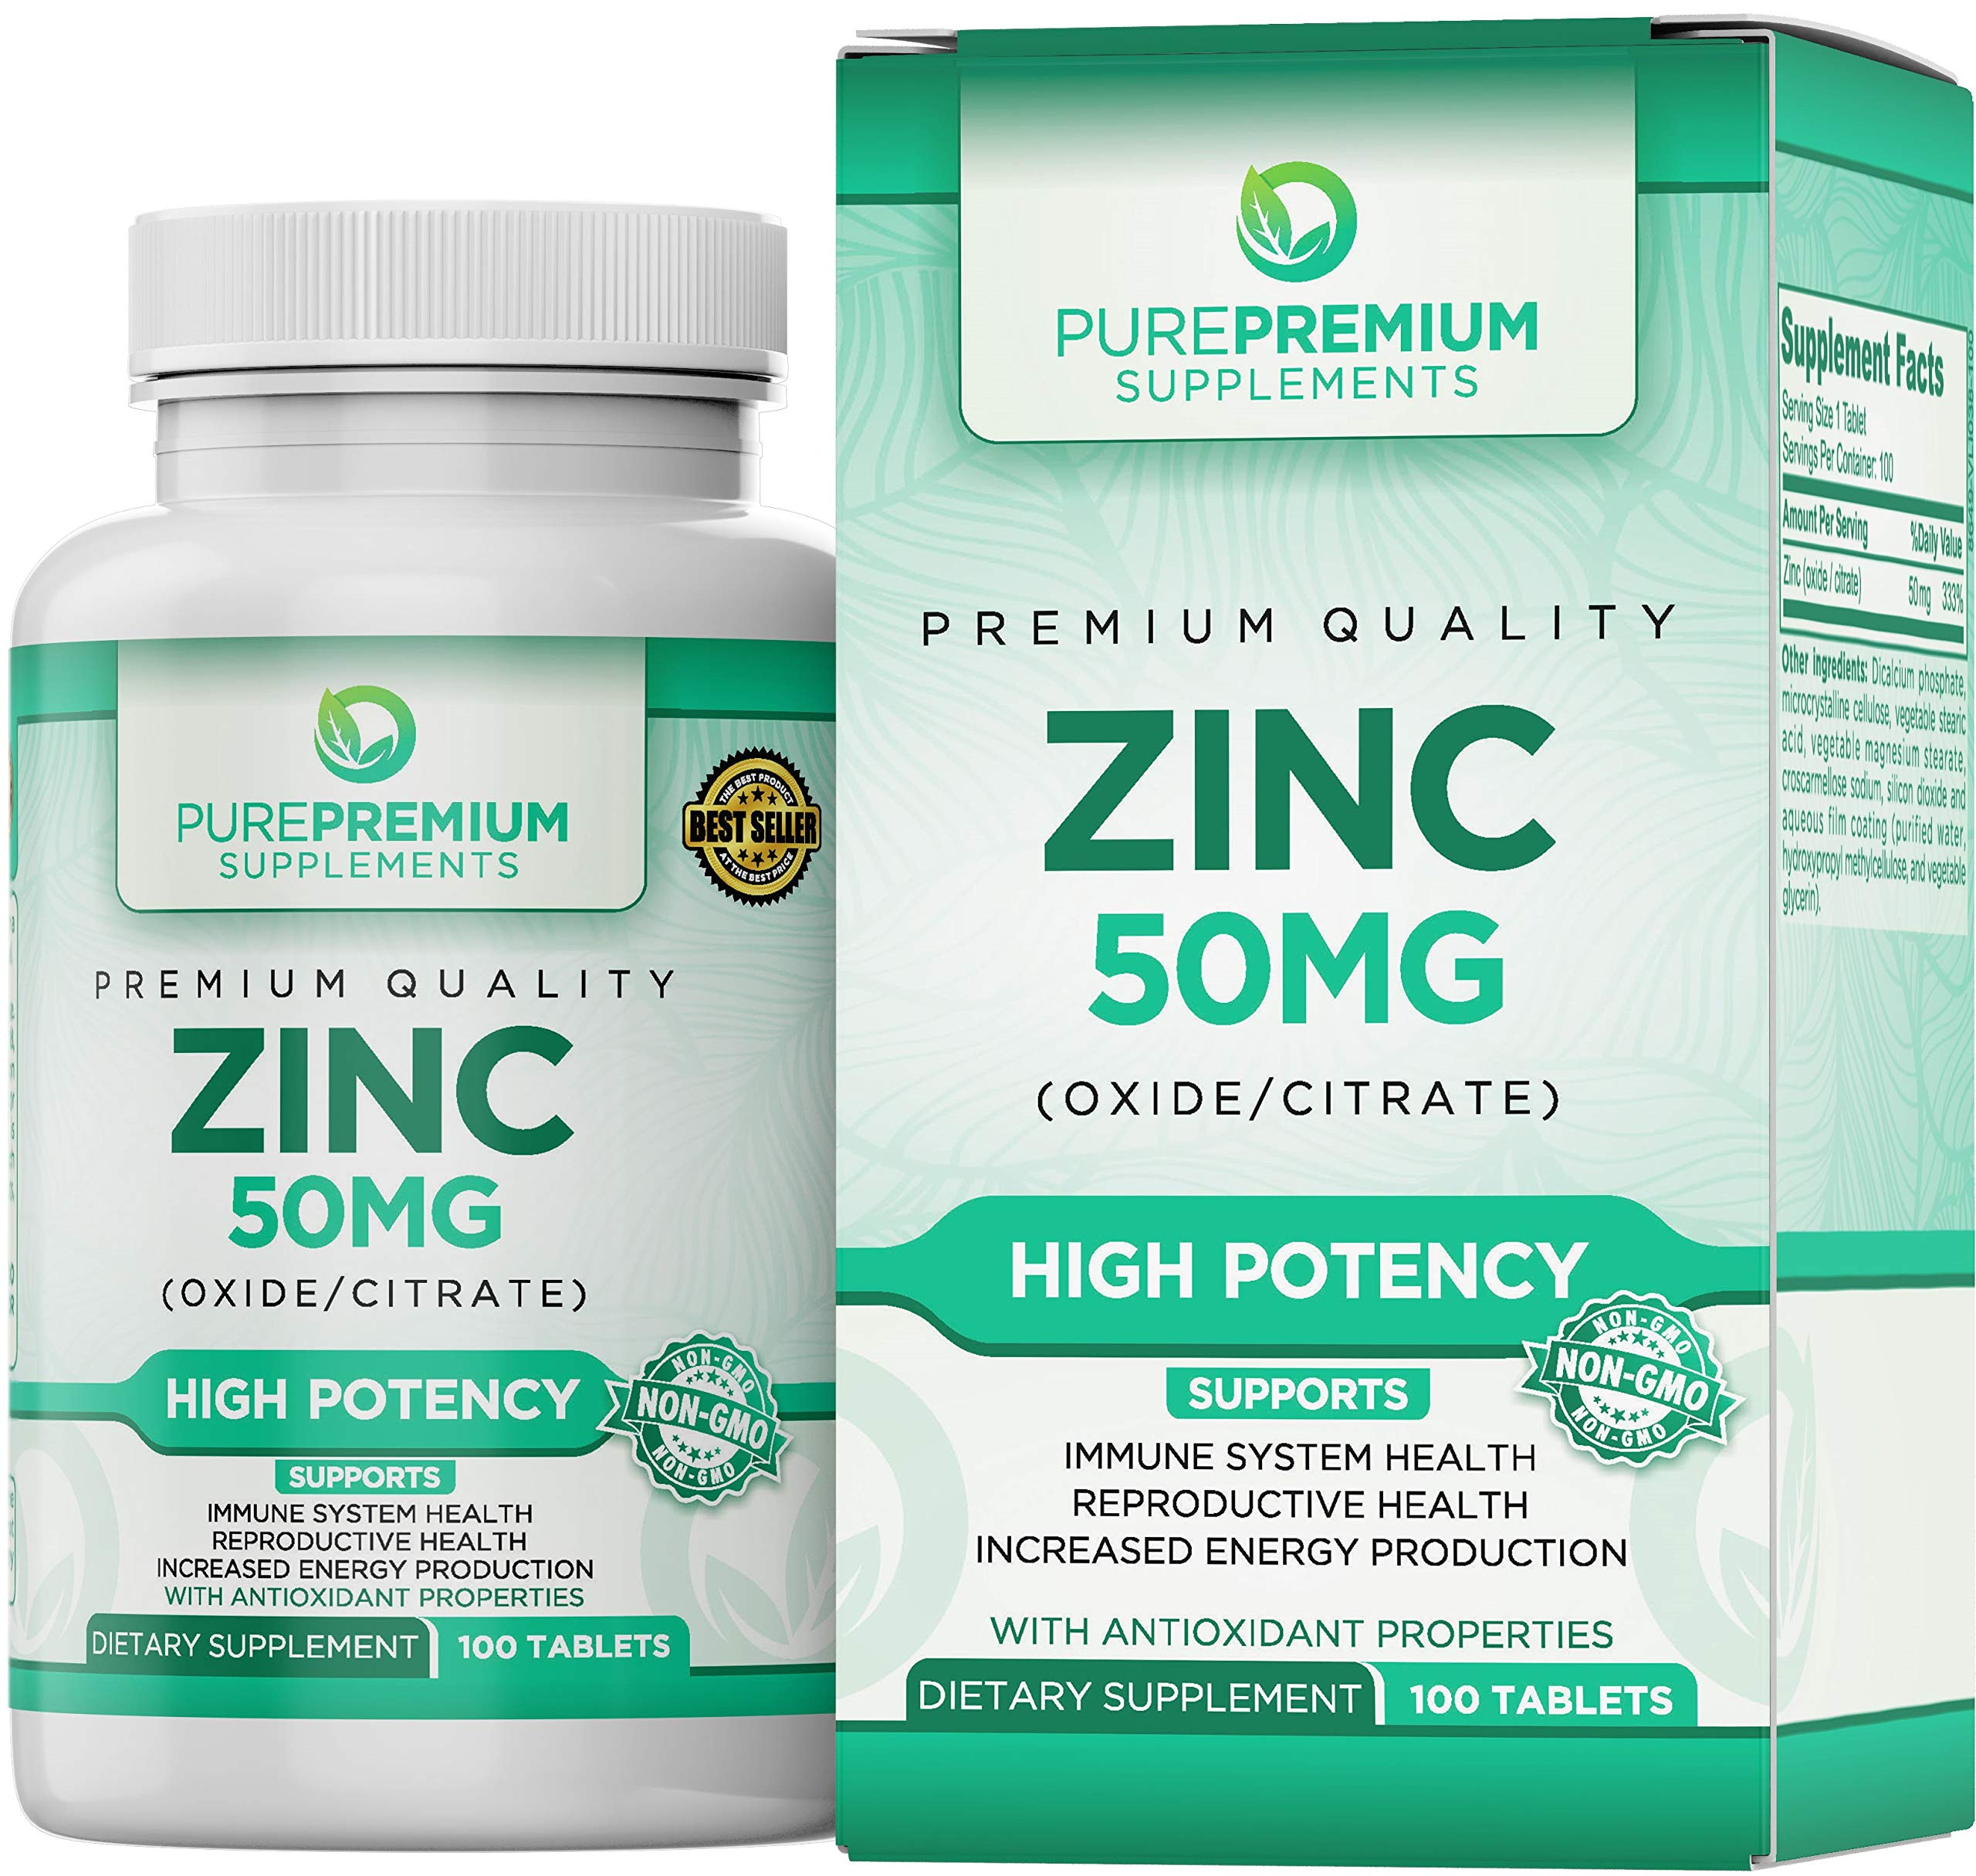 Premium Zinc Oxide - Citrate Supplement by PurePremium Supplements 100 Tablets, 50mg - Supports Immune System & Reproductive Health - Antioxidant Properties & Increased Energy Production